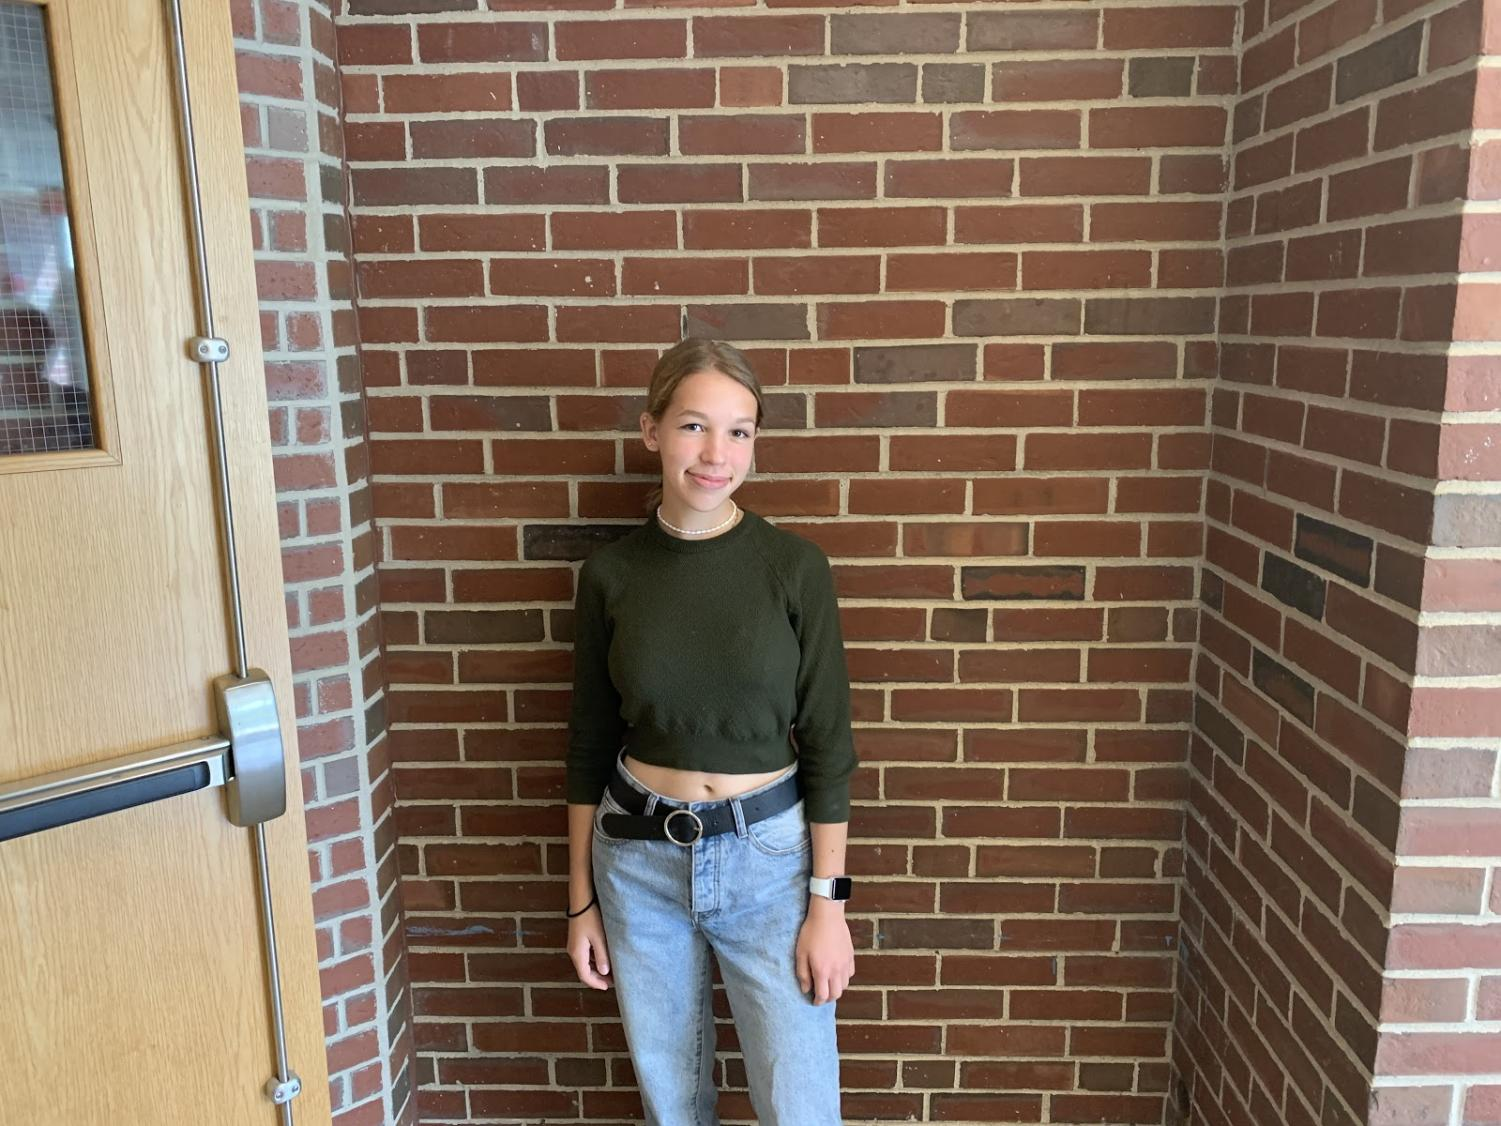 Senior Karmyn Shreeve has been making music since she was little.  She has recently started uploading her songs to Soundcloud.